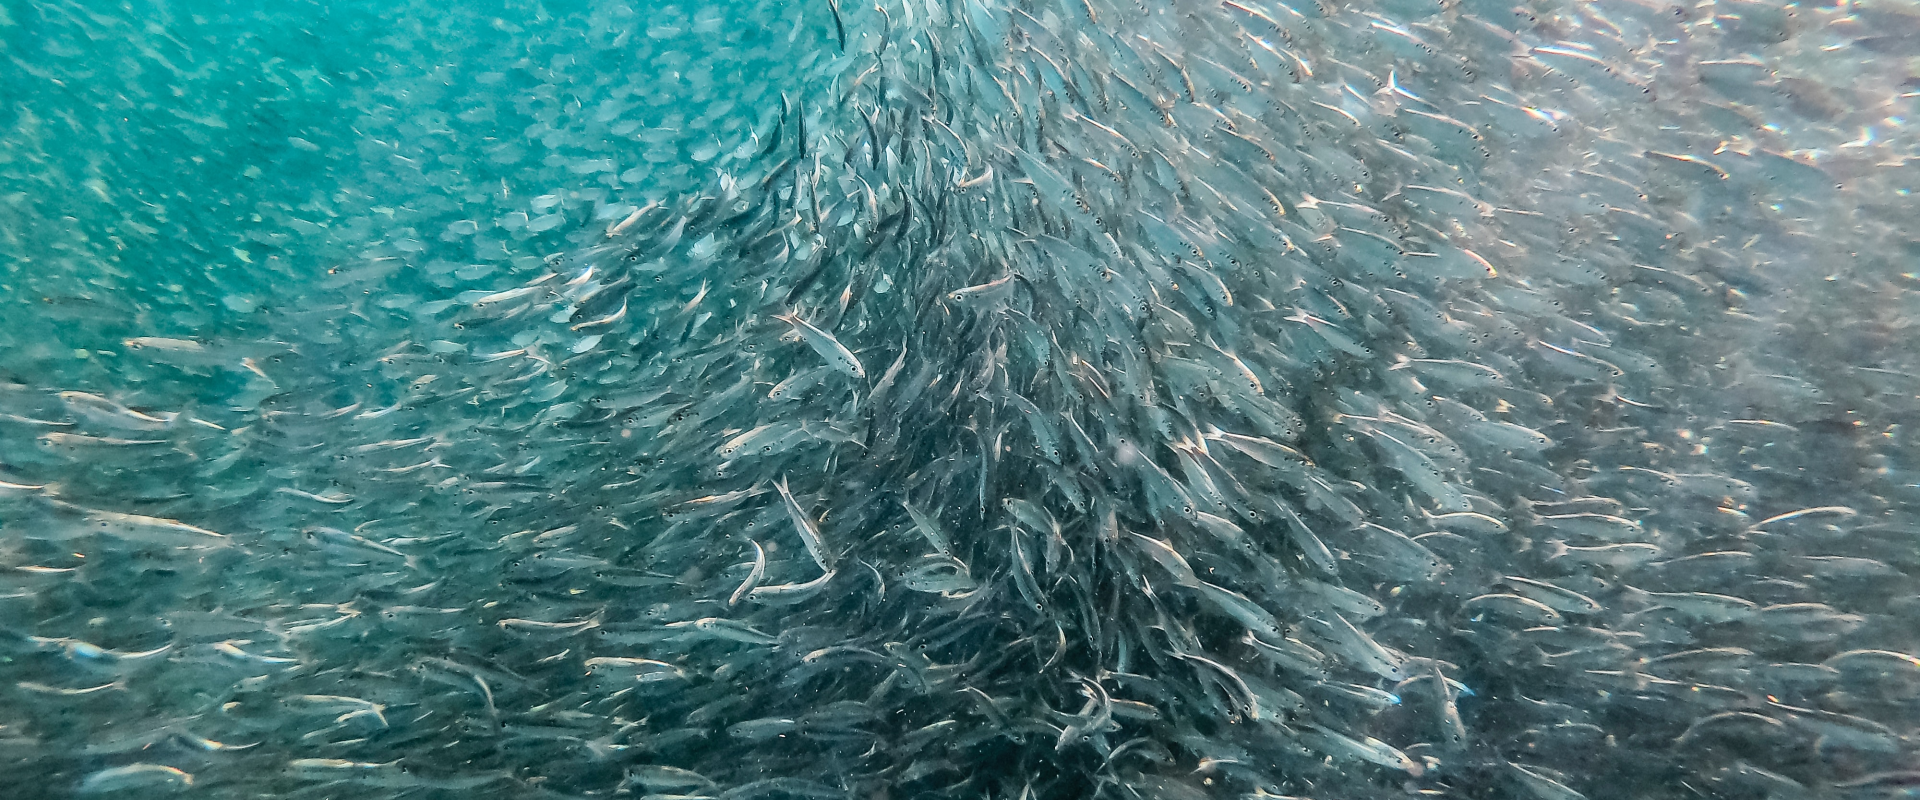 A school of fish changing direction